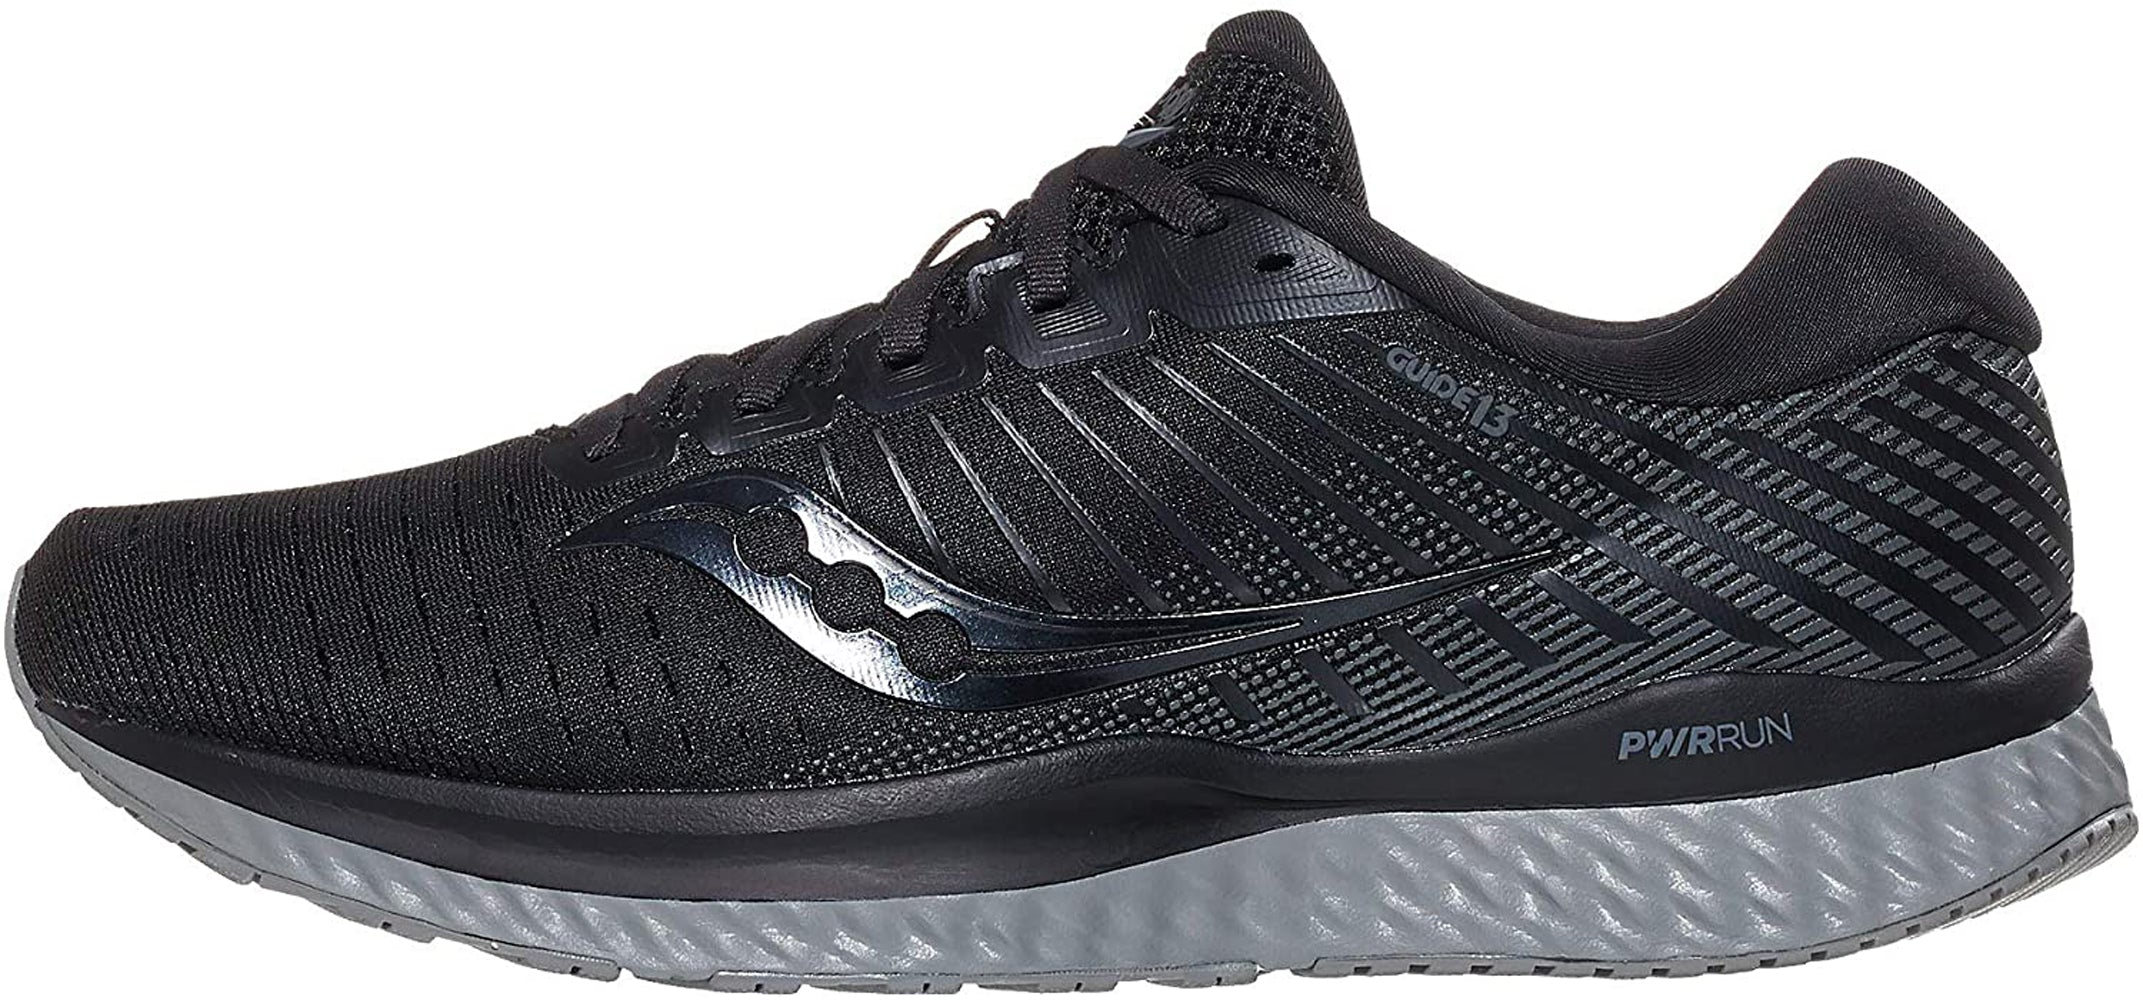 Saucony Men's Guide 13 Running Shoe in Blackout Side Angle View